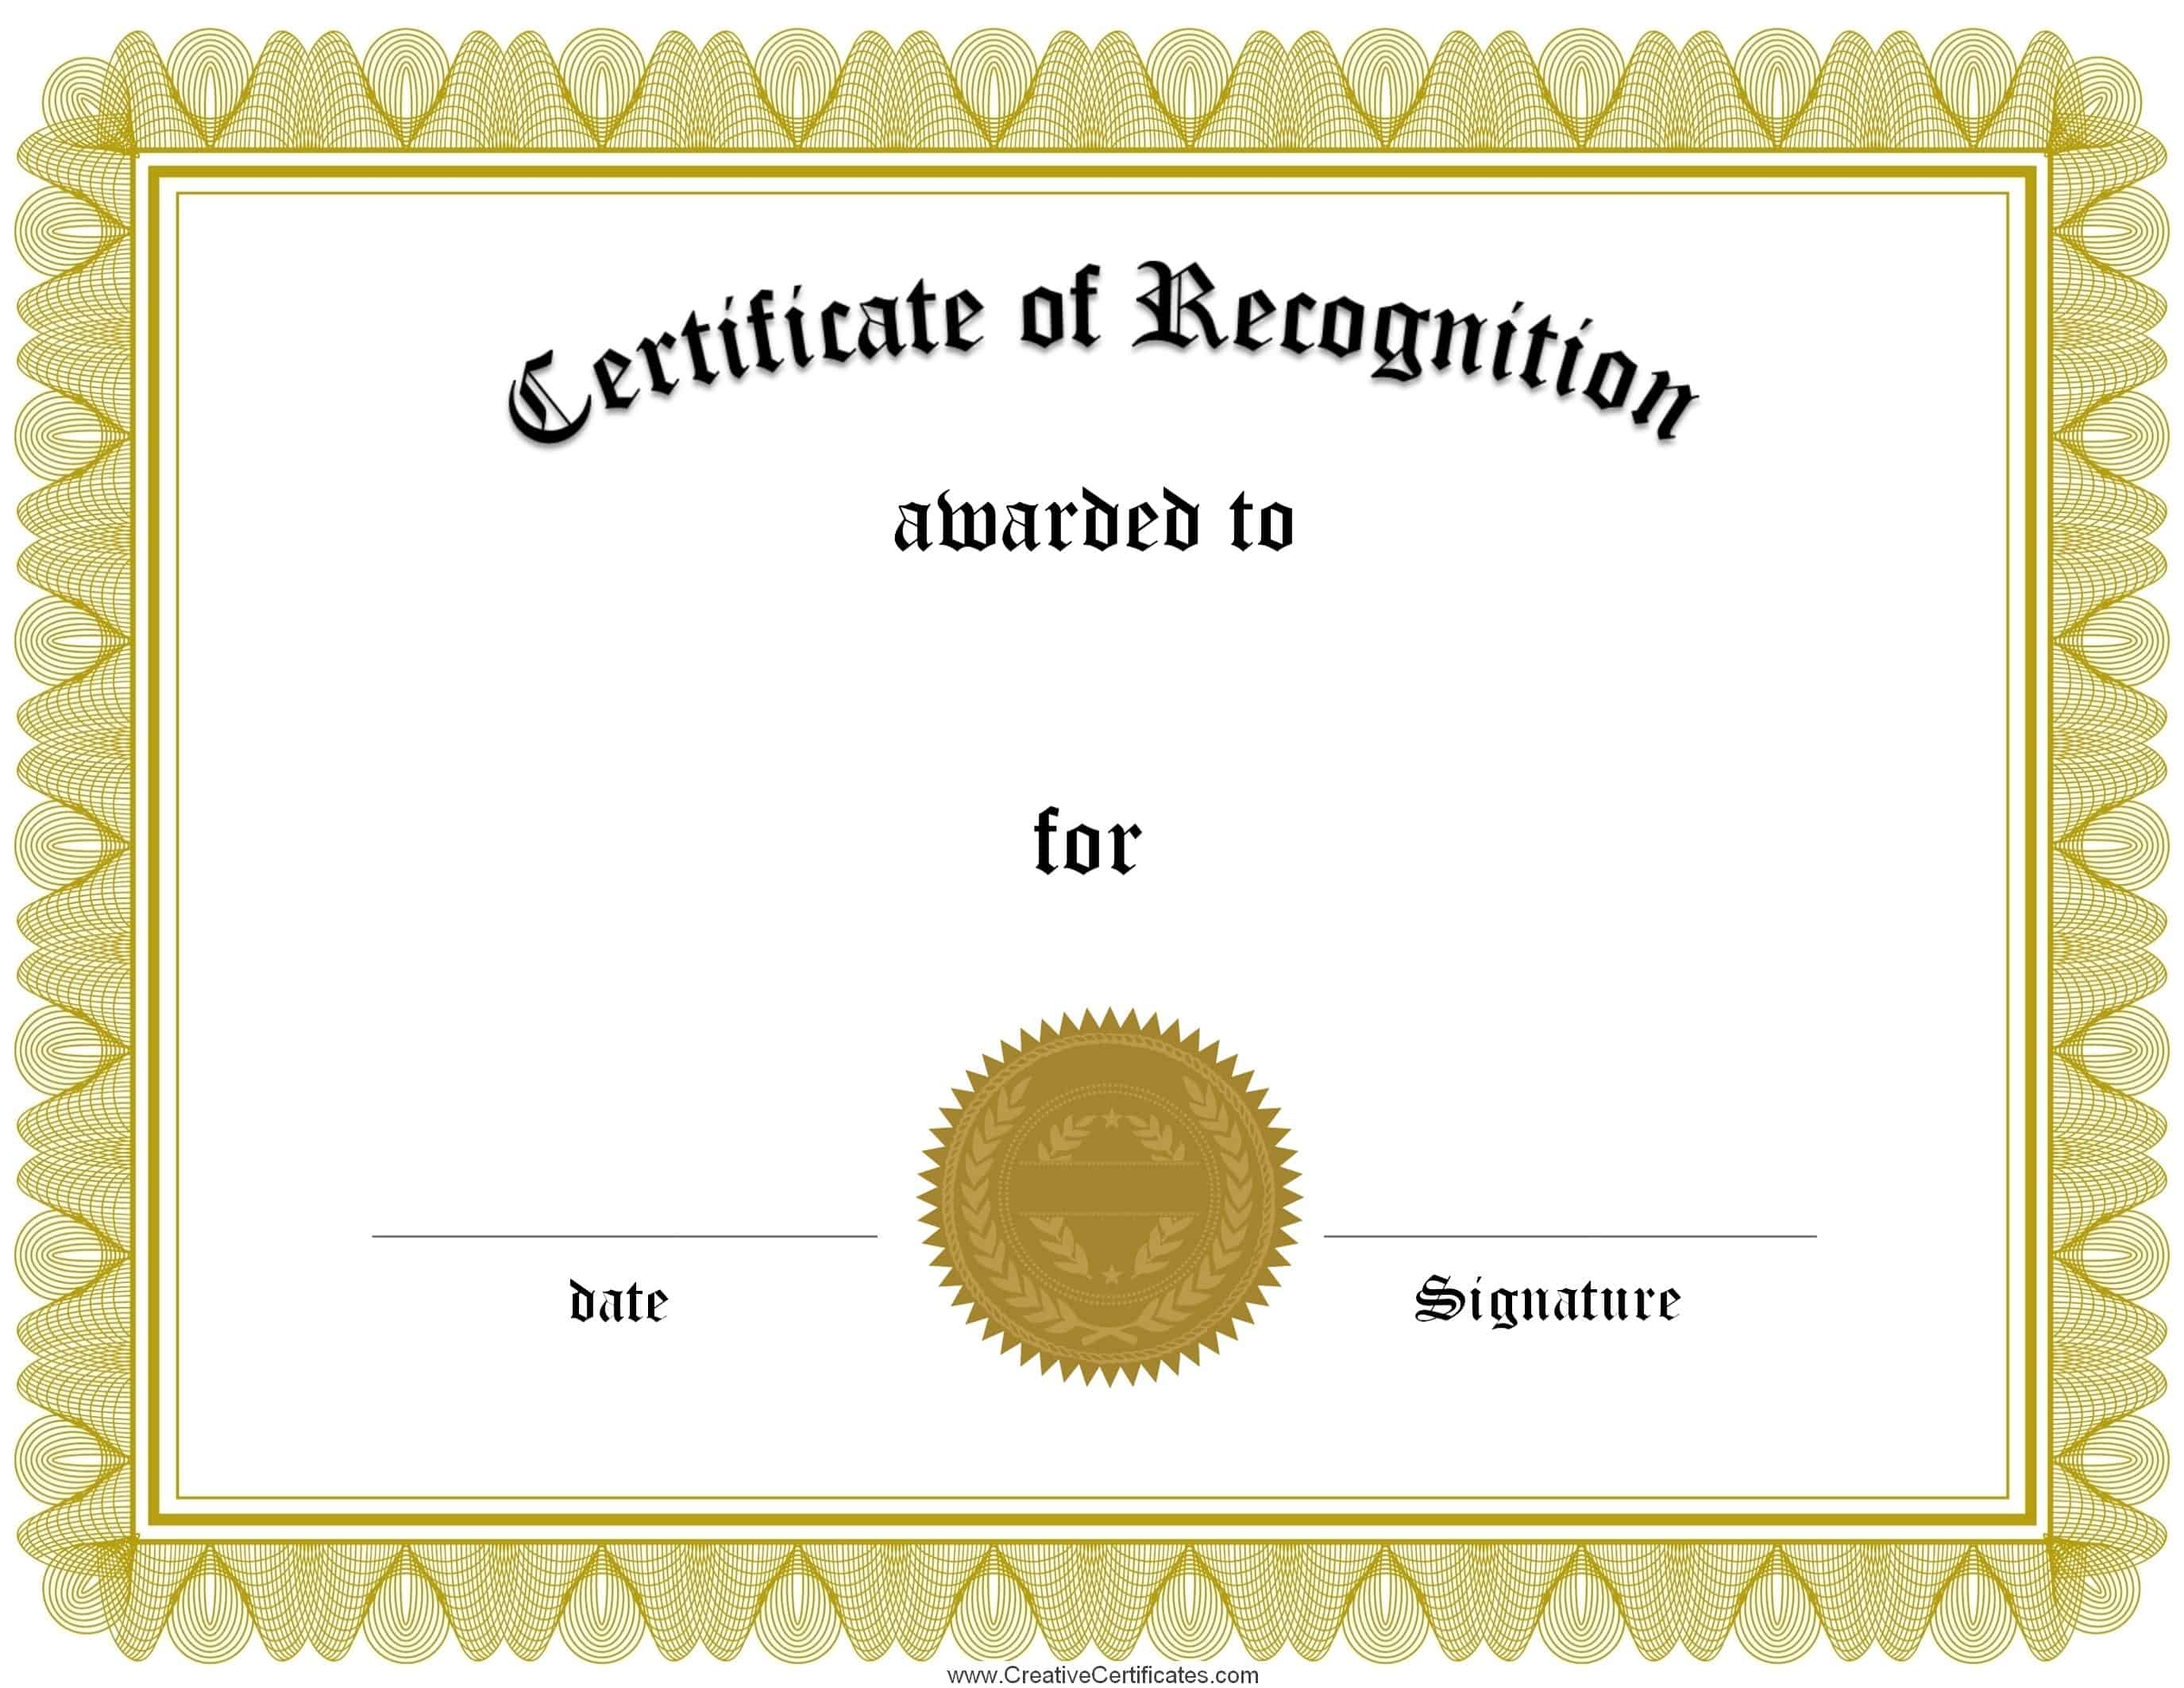 Free certificate of recognition template customize online ornate gold yadclub Images